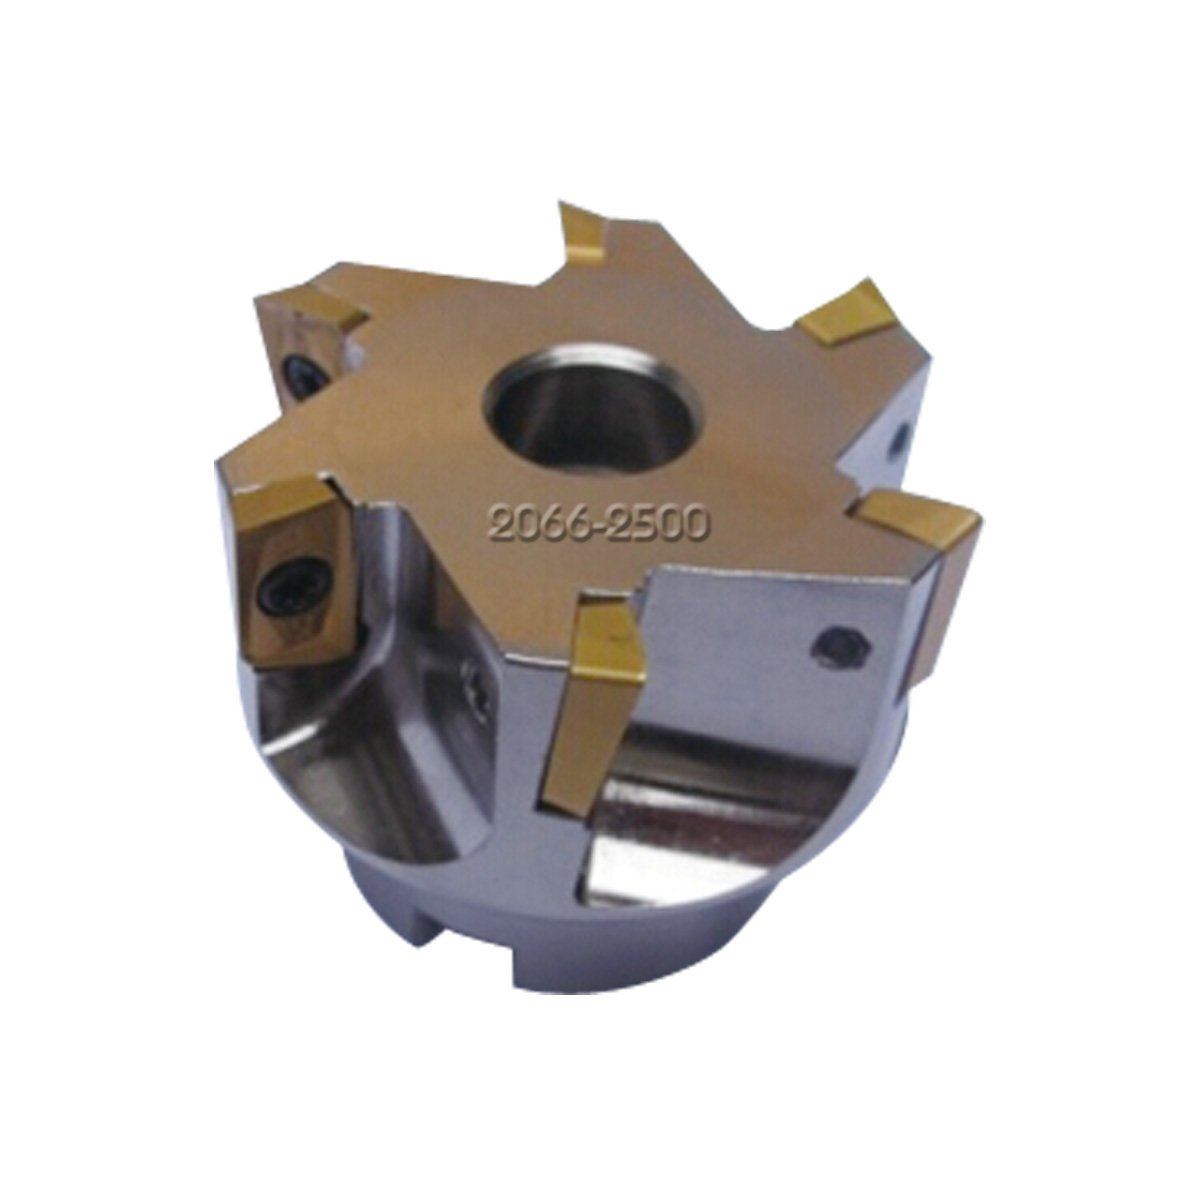 HHIP 2066-2500 2-1/2'' x 3/4'' Bore 90 Degree APKT-160408 Index able Face Mill, 6 Teeth